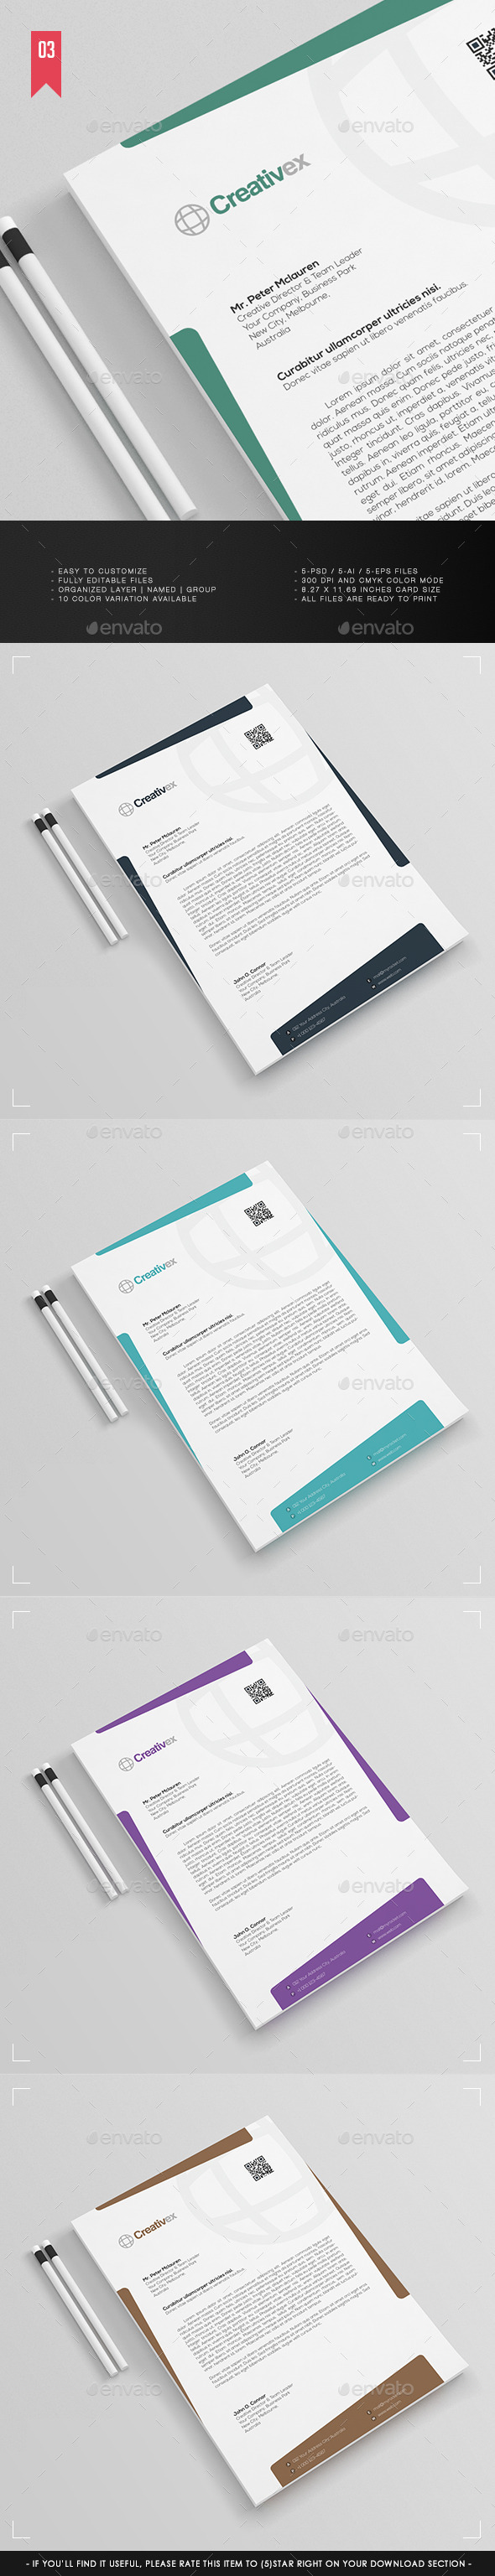 GraphicRiver A4 Business Letterhead V.003 11846737